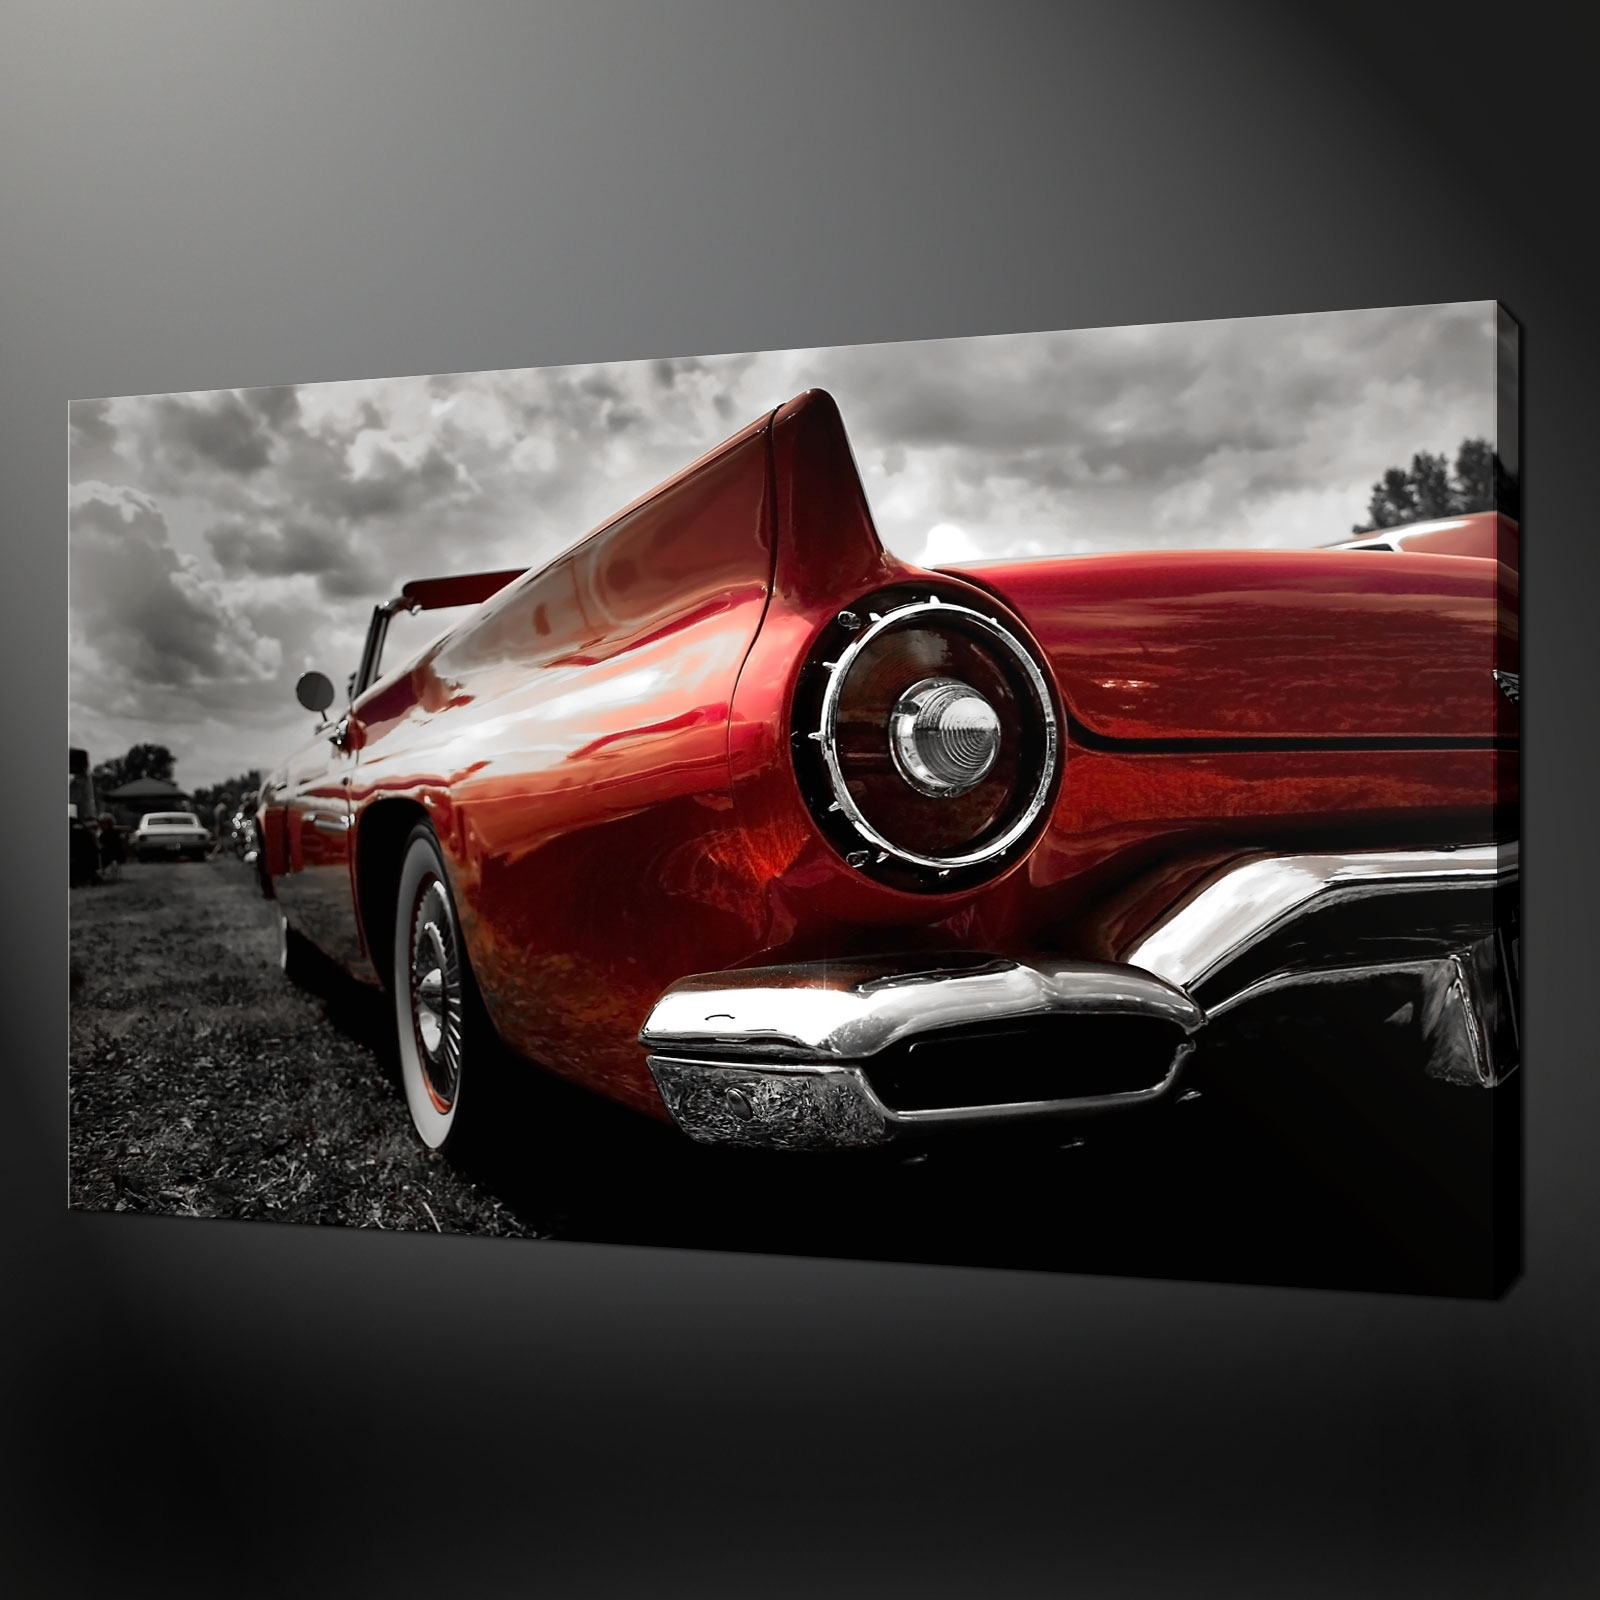 Classic Red Car Canvas Print Picture Wall Art Regarding Most Current Car Canvas Wall Art (Gallery 10 of 20)